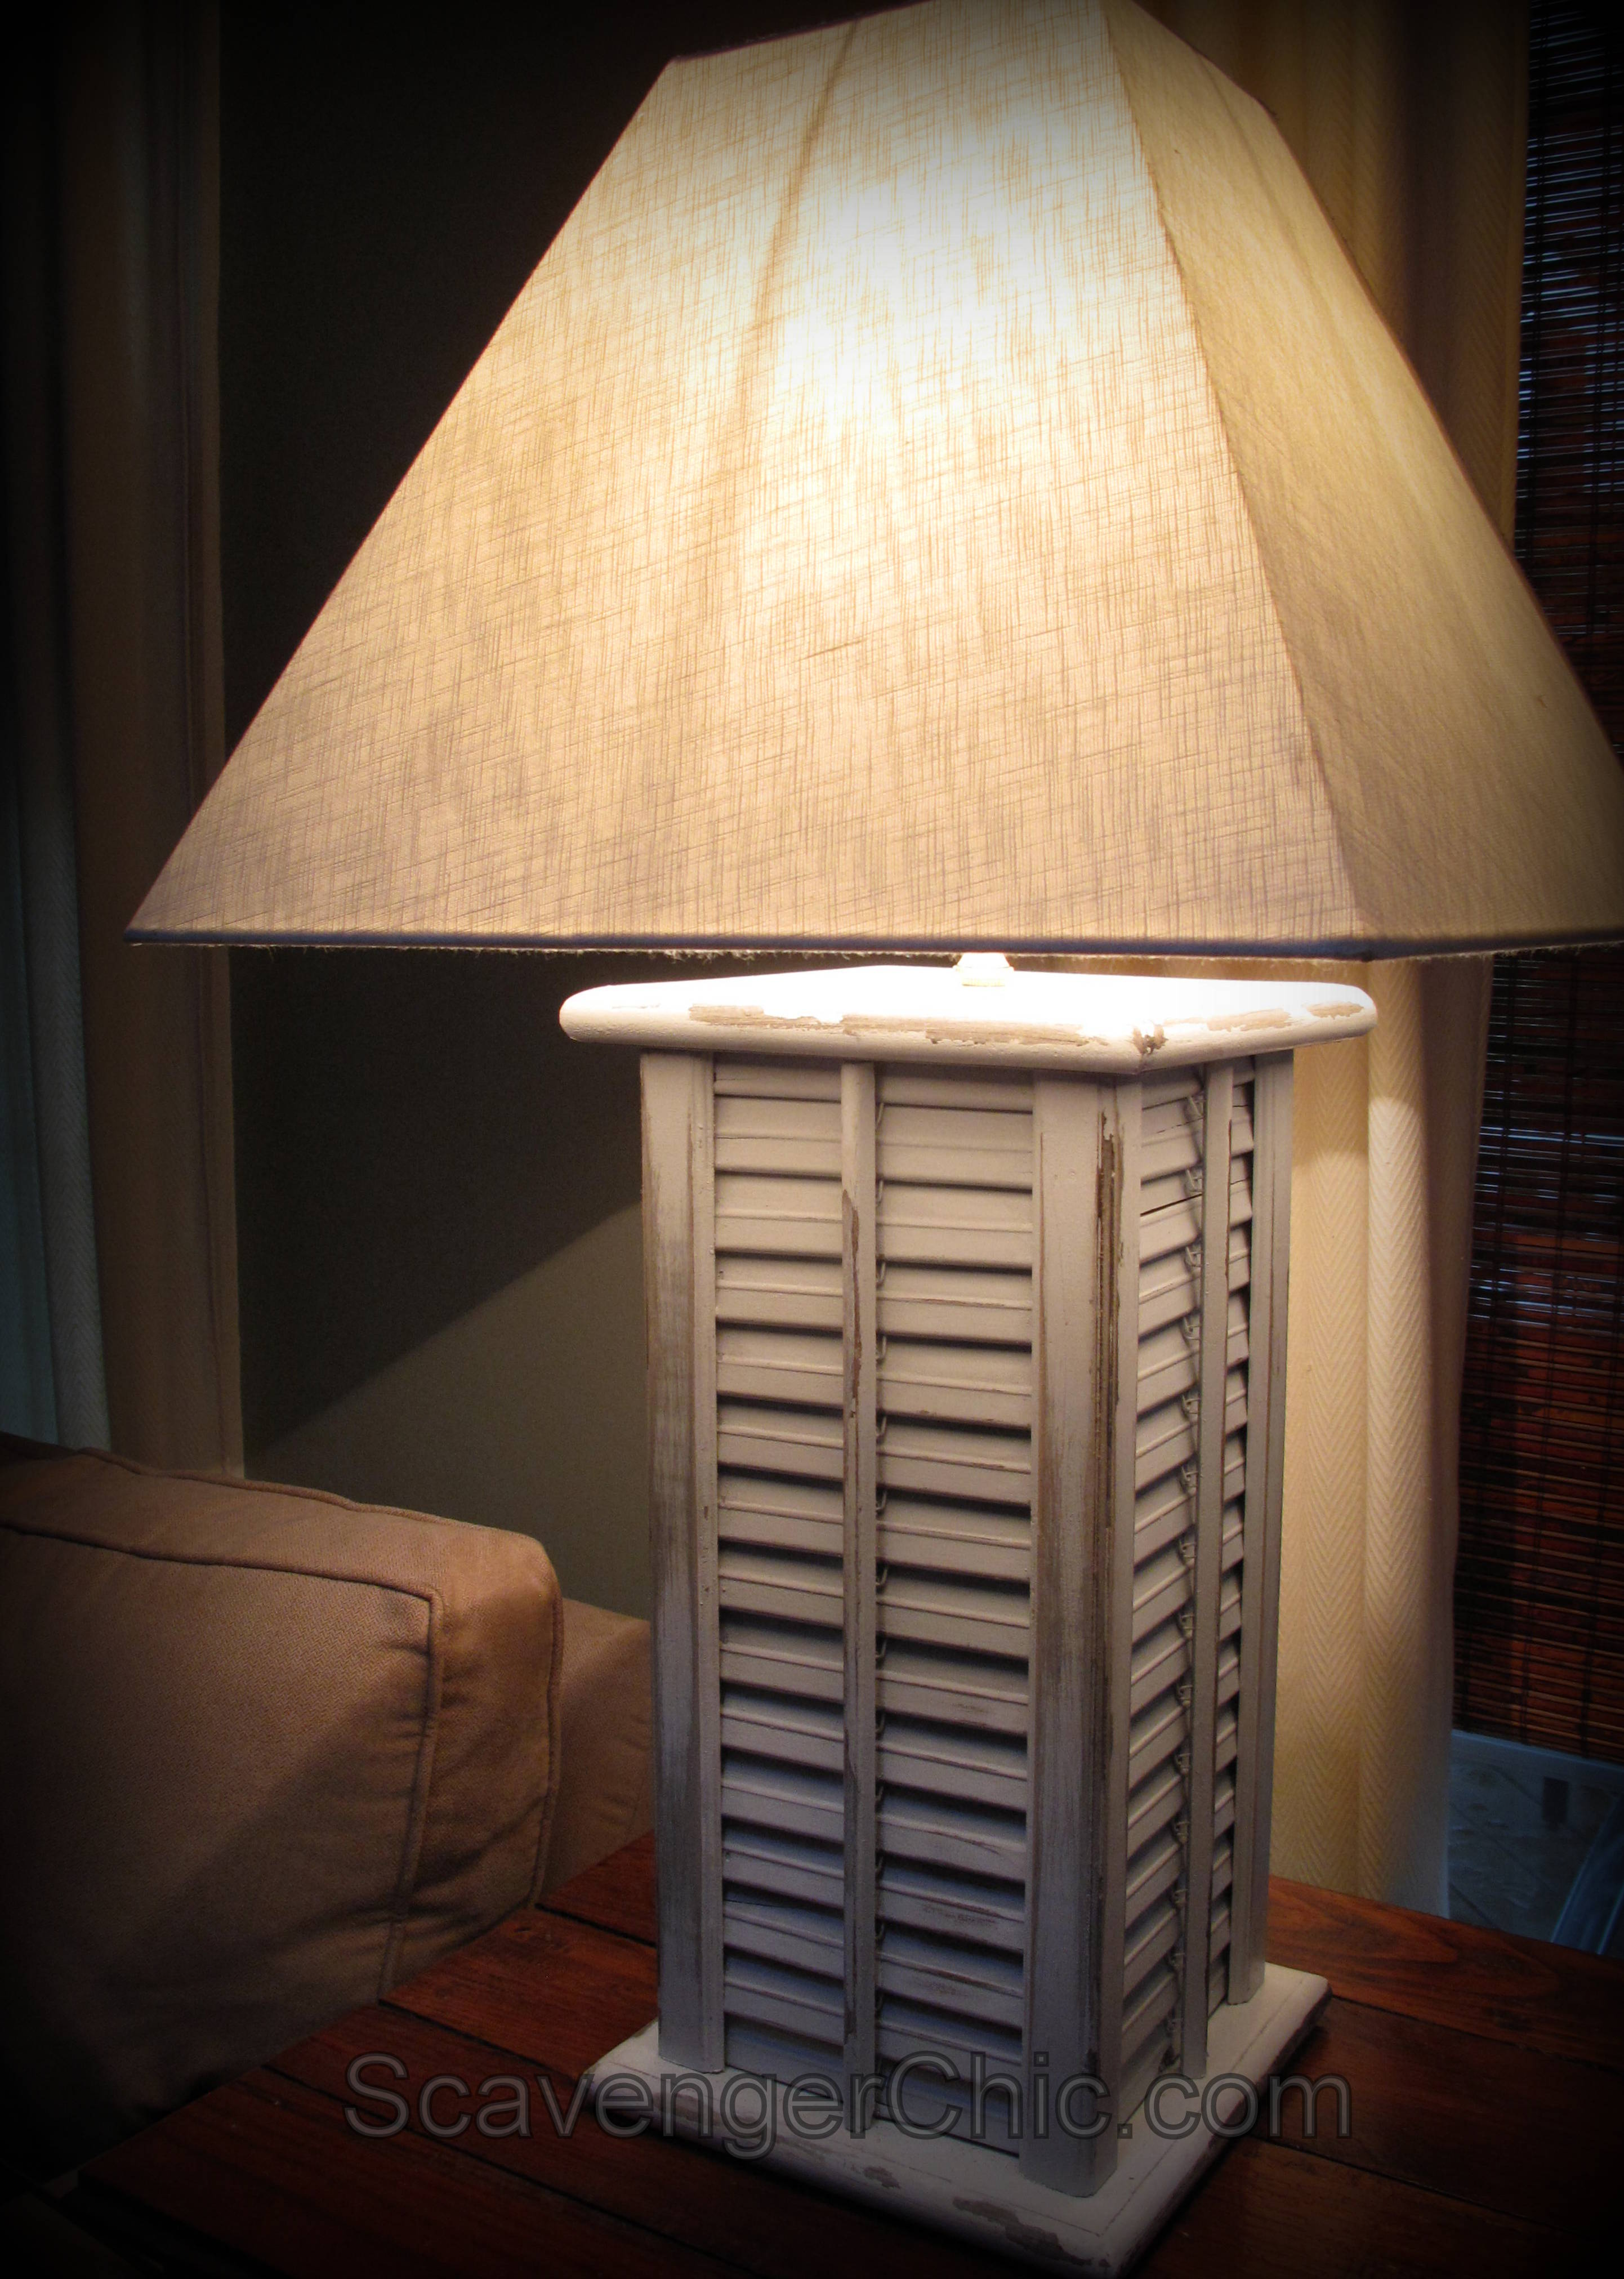 Upcycled shutters lamp diy scavenger chic from shutters to a lamp geotapseo Gallery